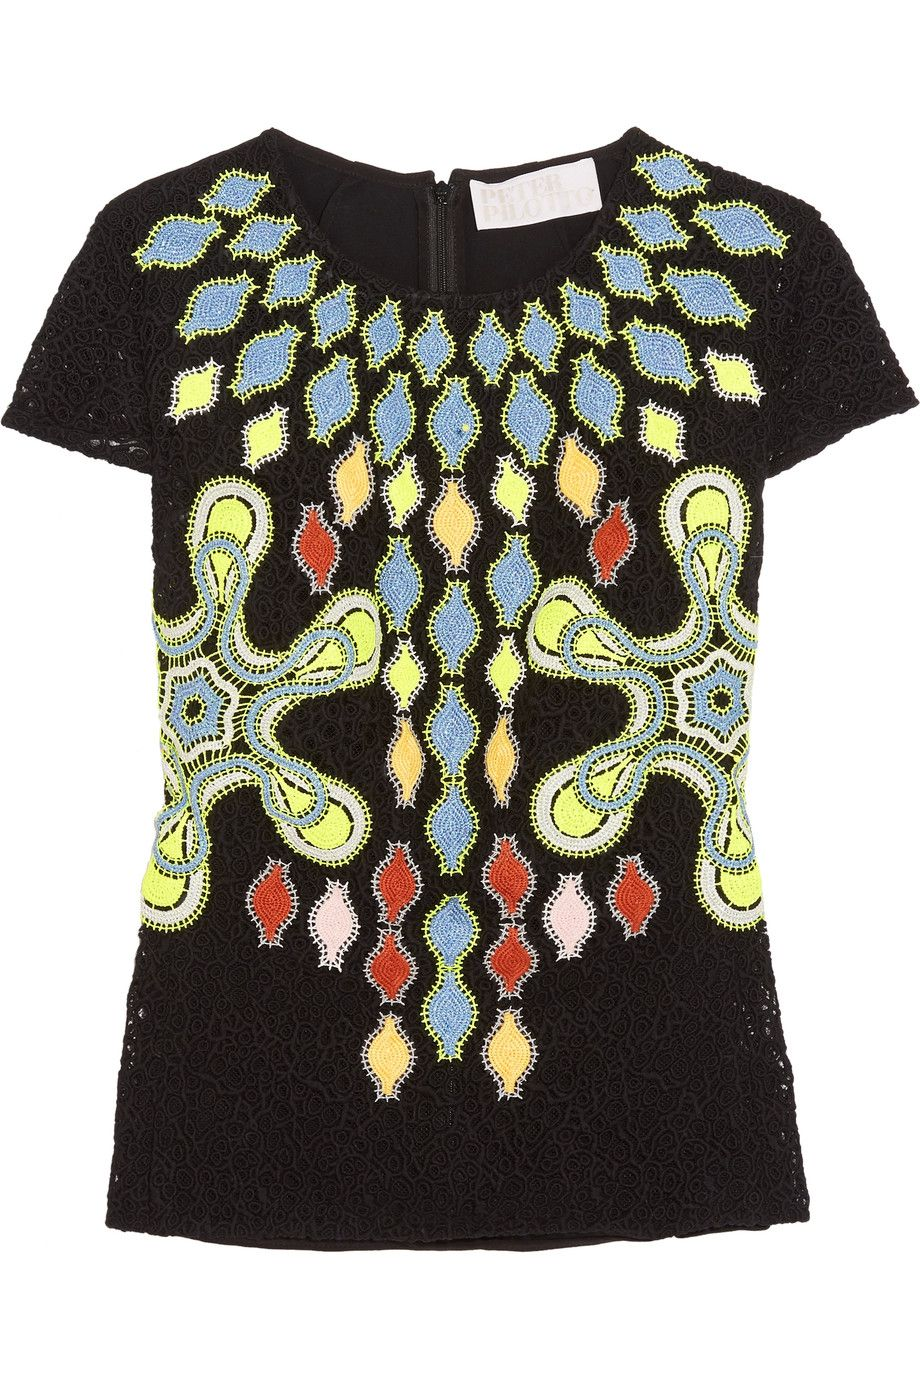 PETER PILOTTO Solitaire broderie anglaise wool-blend top. #peterpilotto #cloth #top